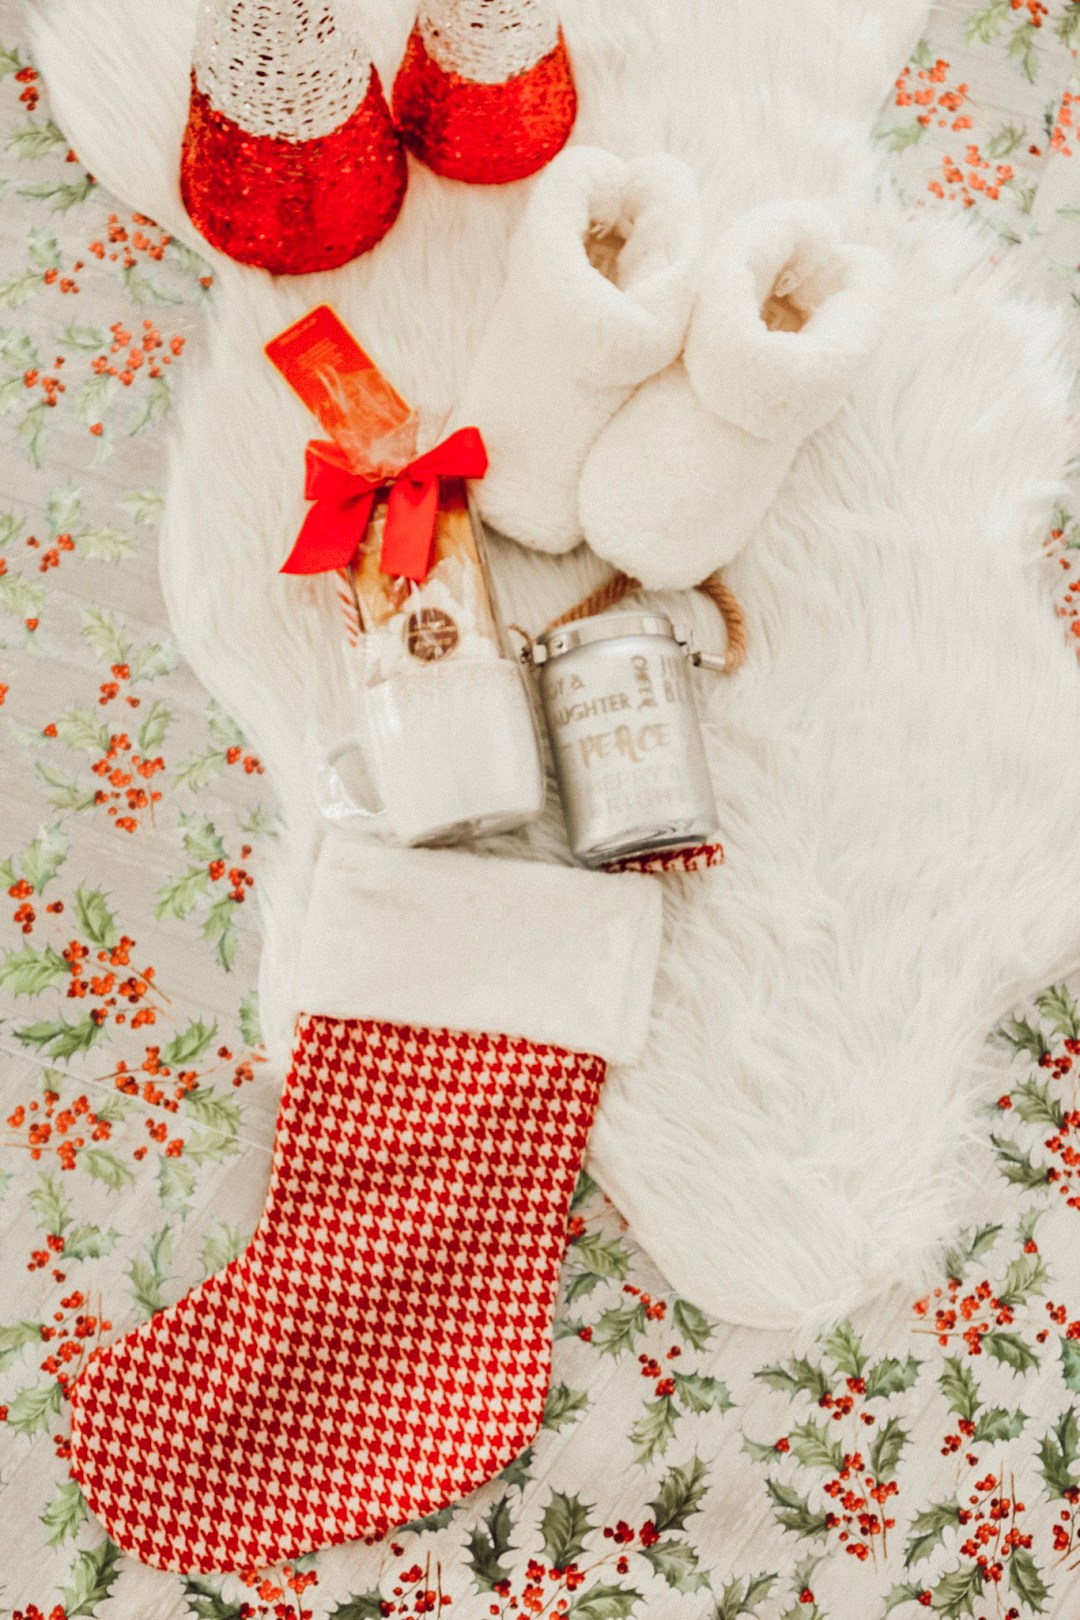 Alena Gidenko of modaprints.com shares last minute stocking stuffers with Gordmans